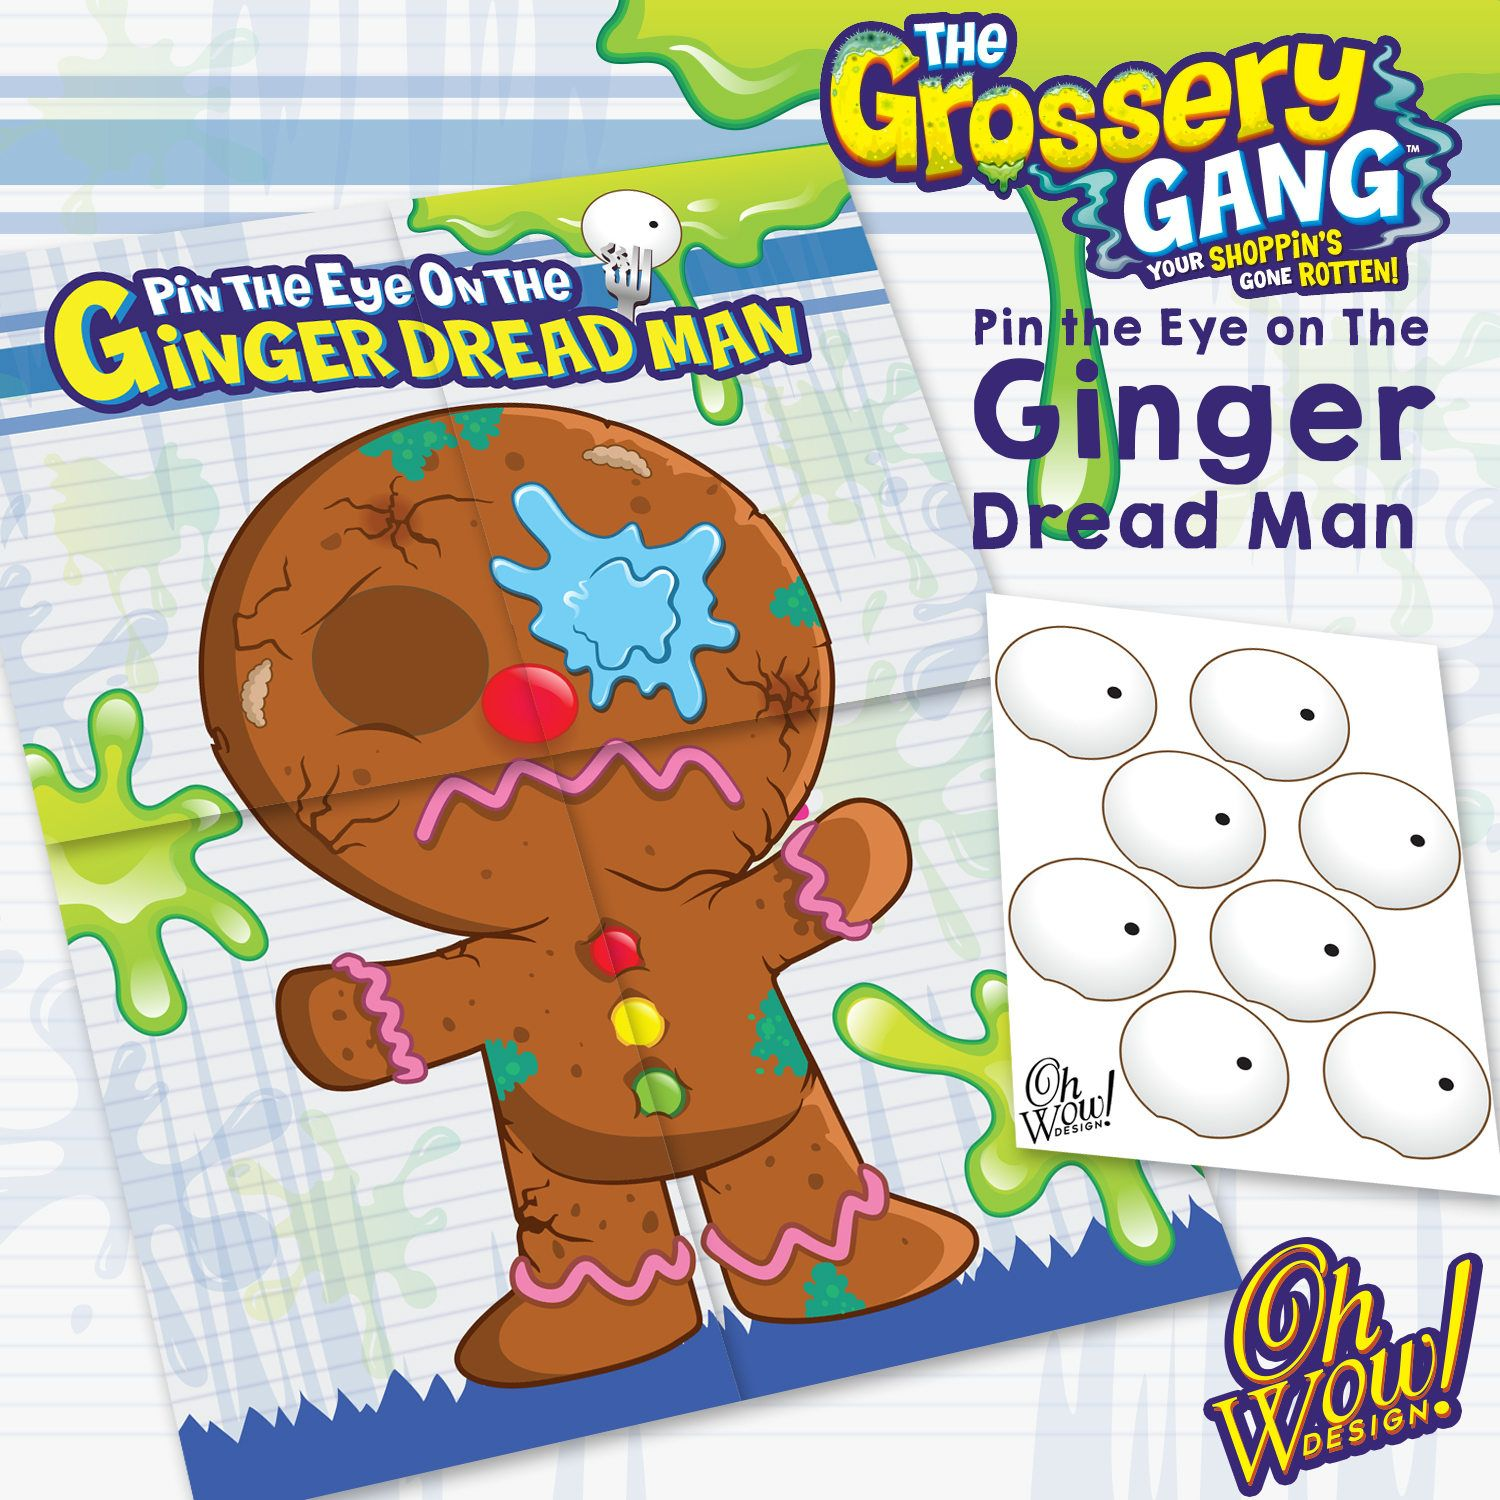 Ginger Desenho within grossery gang theme pin the eye on the ginger dread man: digital